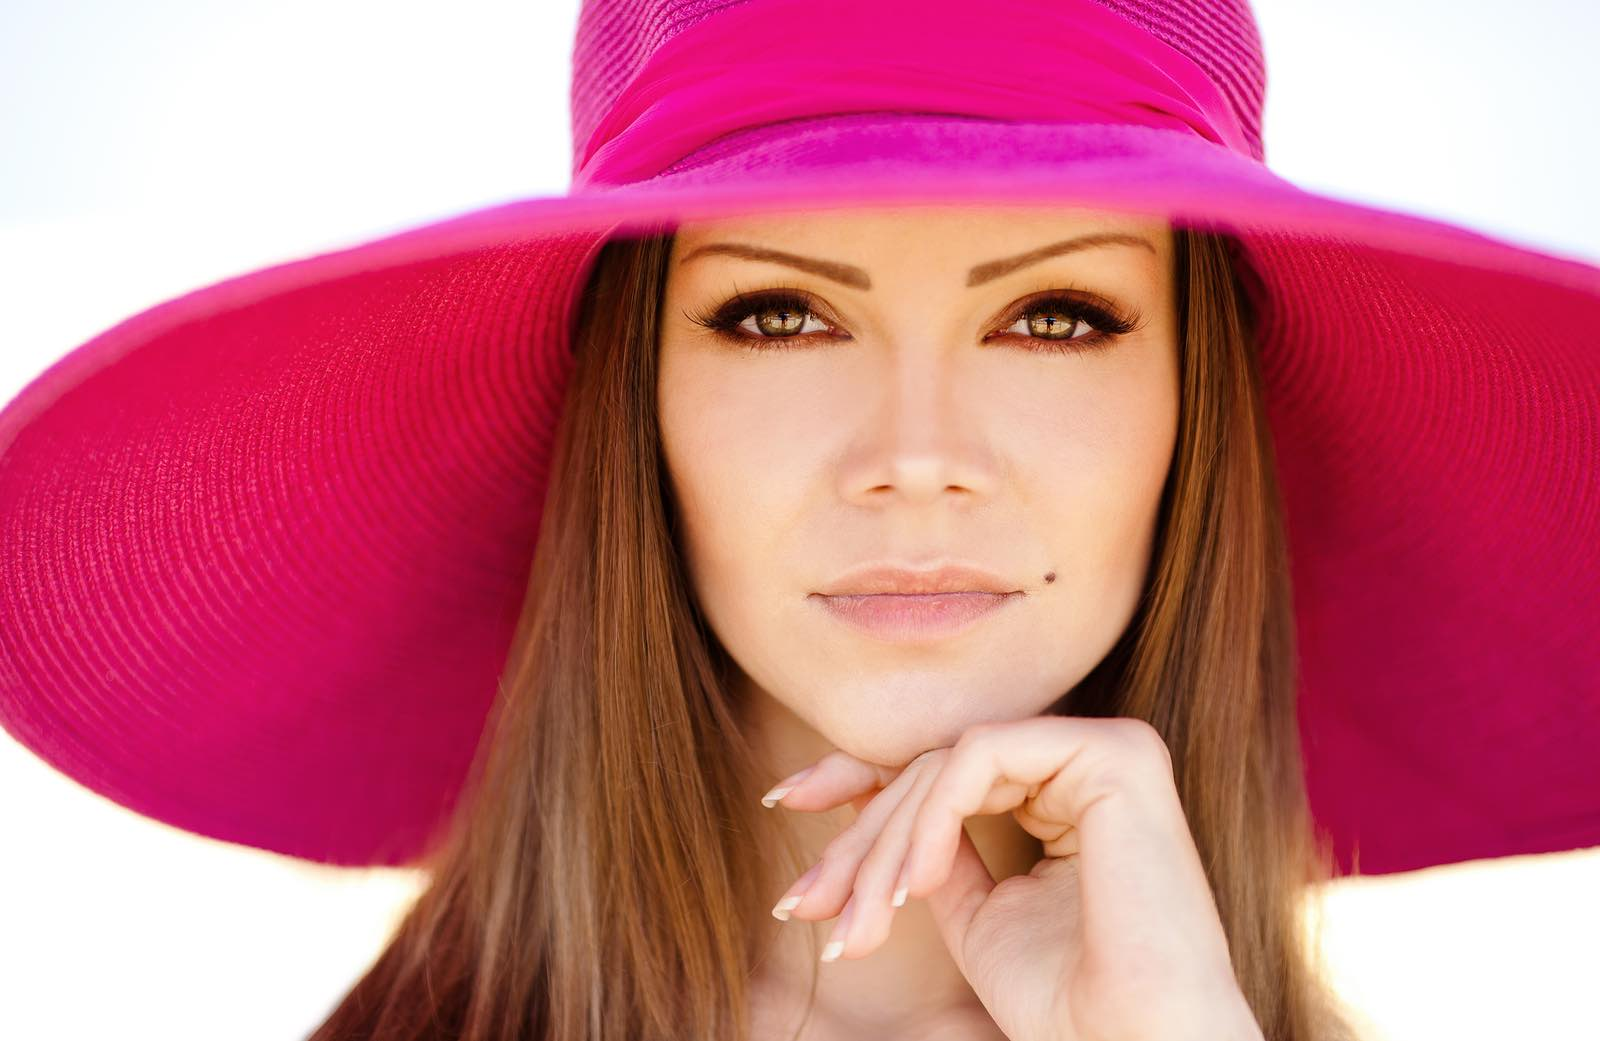 Beautiful woman in red hat with large fields.